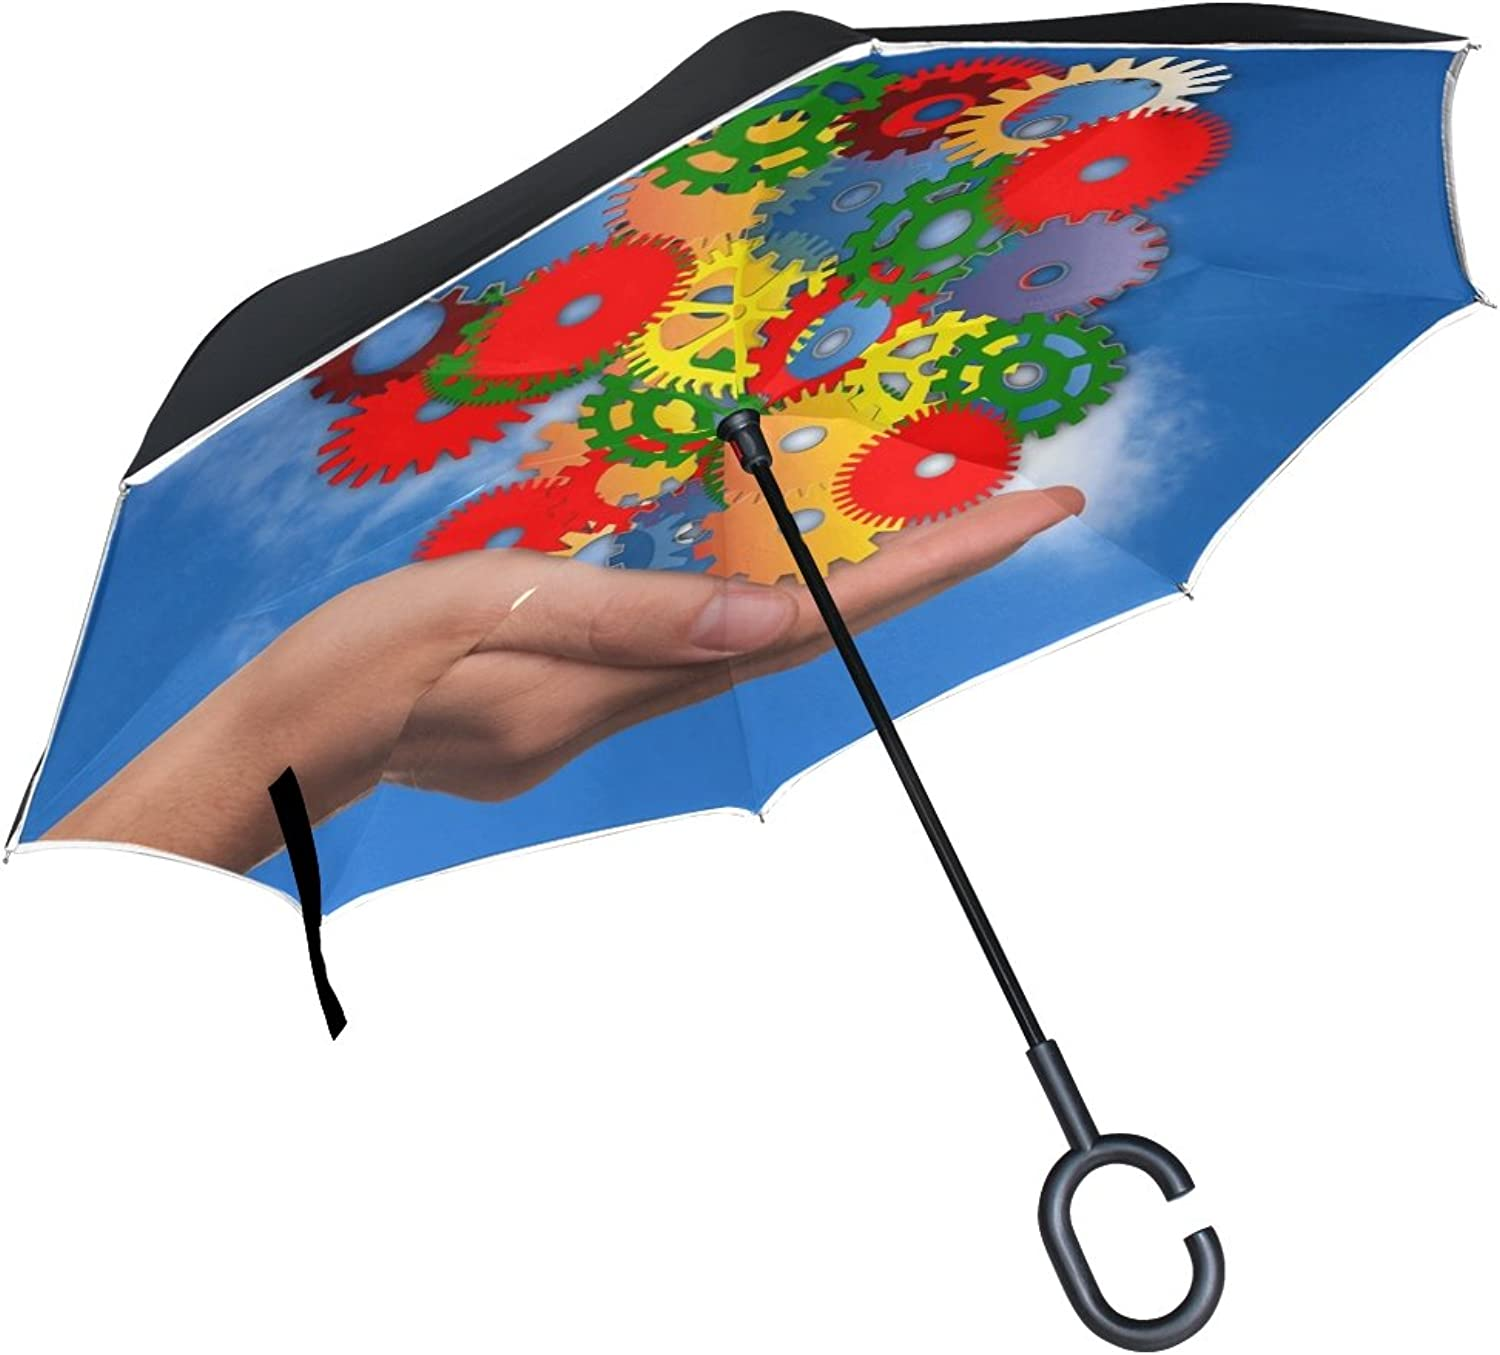 Double Layer Ingreened Hand Keep Gears colorful Clouds Way of Thinking Umbrellas Reverse Folding Umbrella Windproof Uv Predection Big Straight Umbrella for Car Rain Outdoor with CShaped Handle